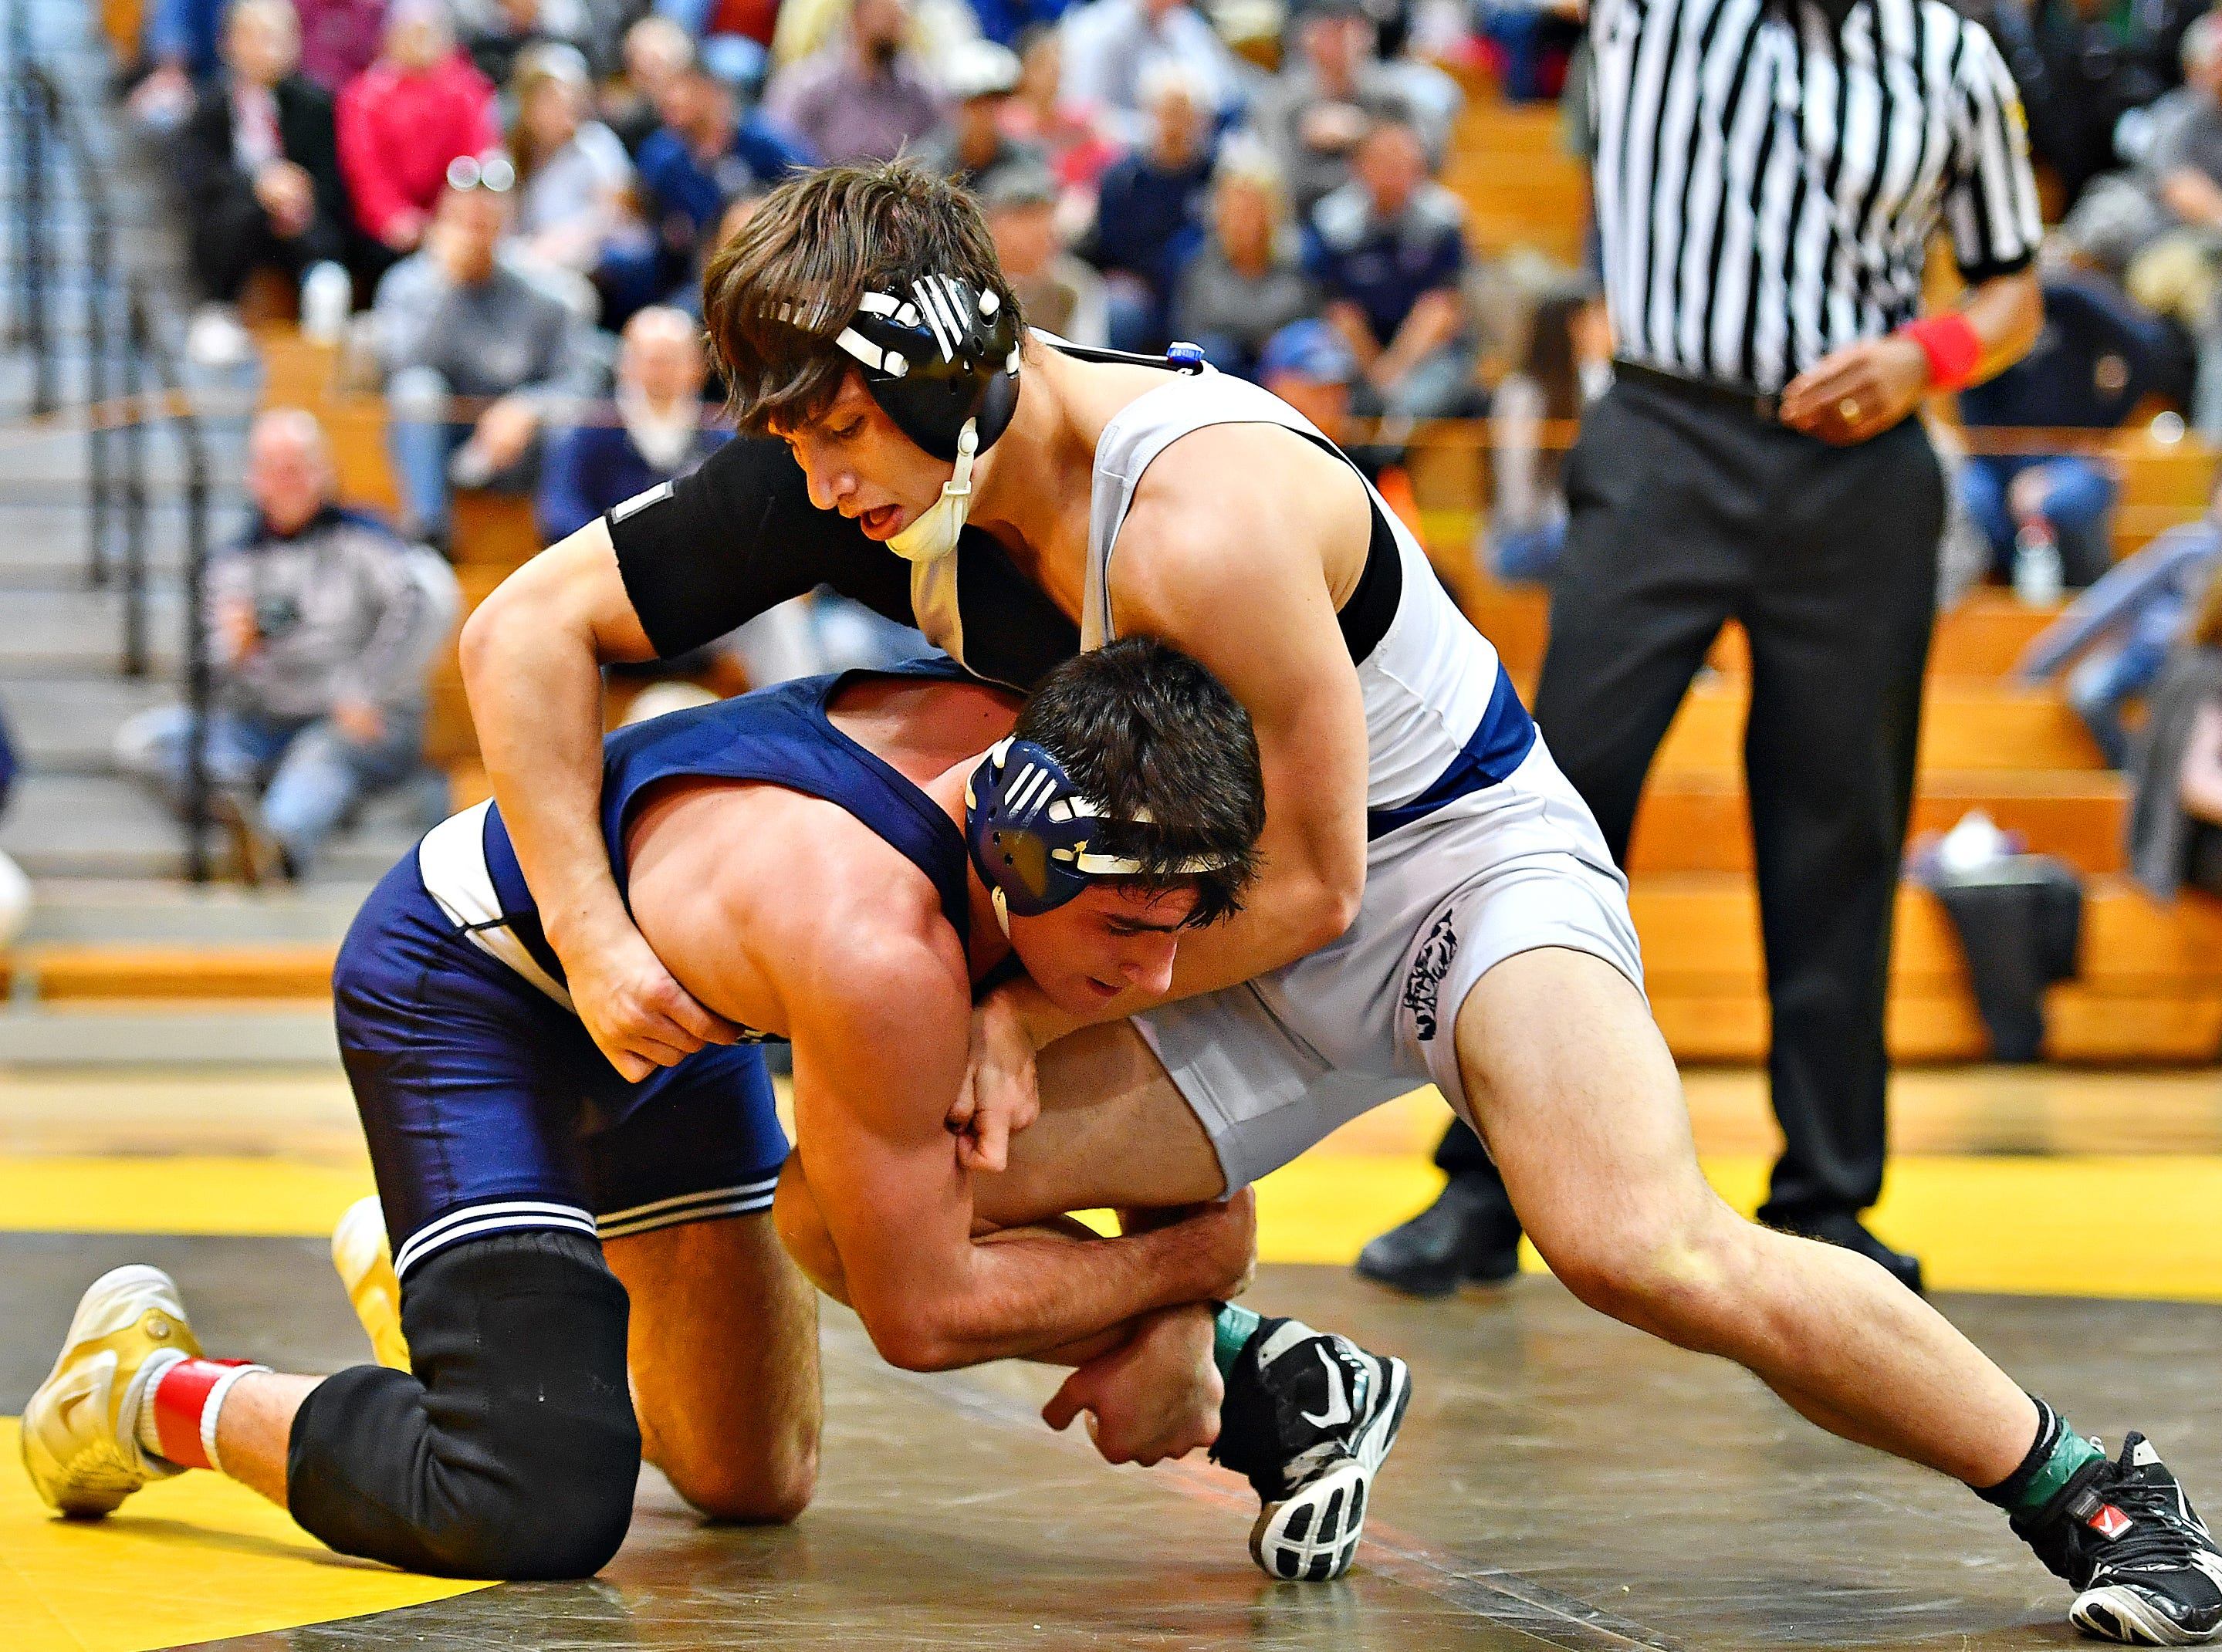 Dallastown's Franklin Klinger, right, wrestles Cedar Cliff's Isaiah Auman in the 170 pound weight class during District 3, Class 3A wrestling championship action at Milton Hershey High School in Hershey, Saturday, Feb. 2, 2019. Dawn J. Sagert photo